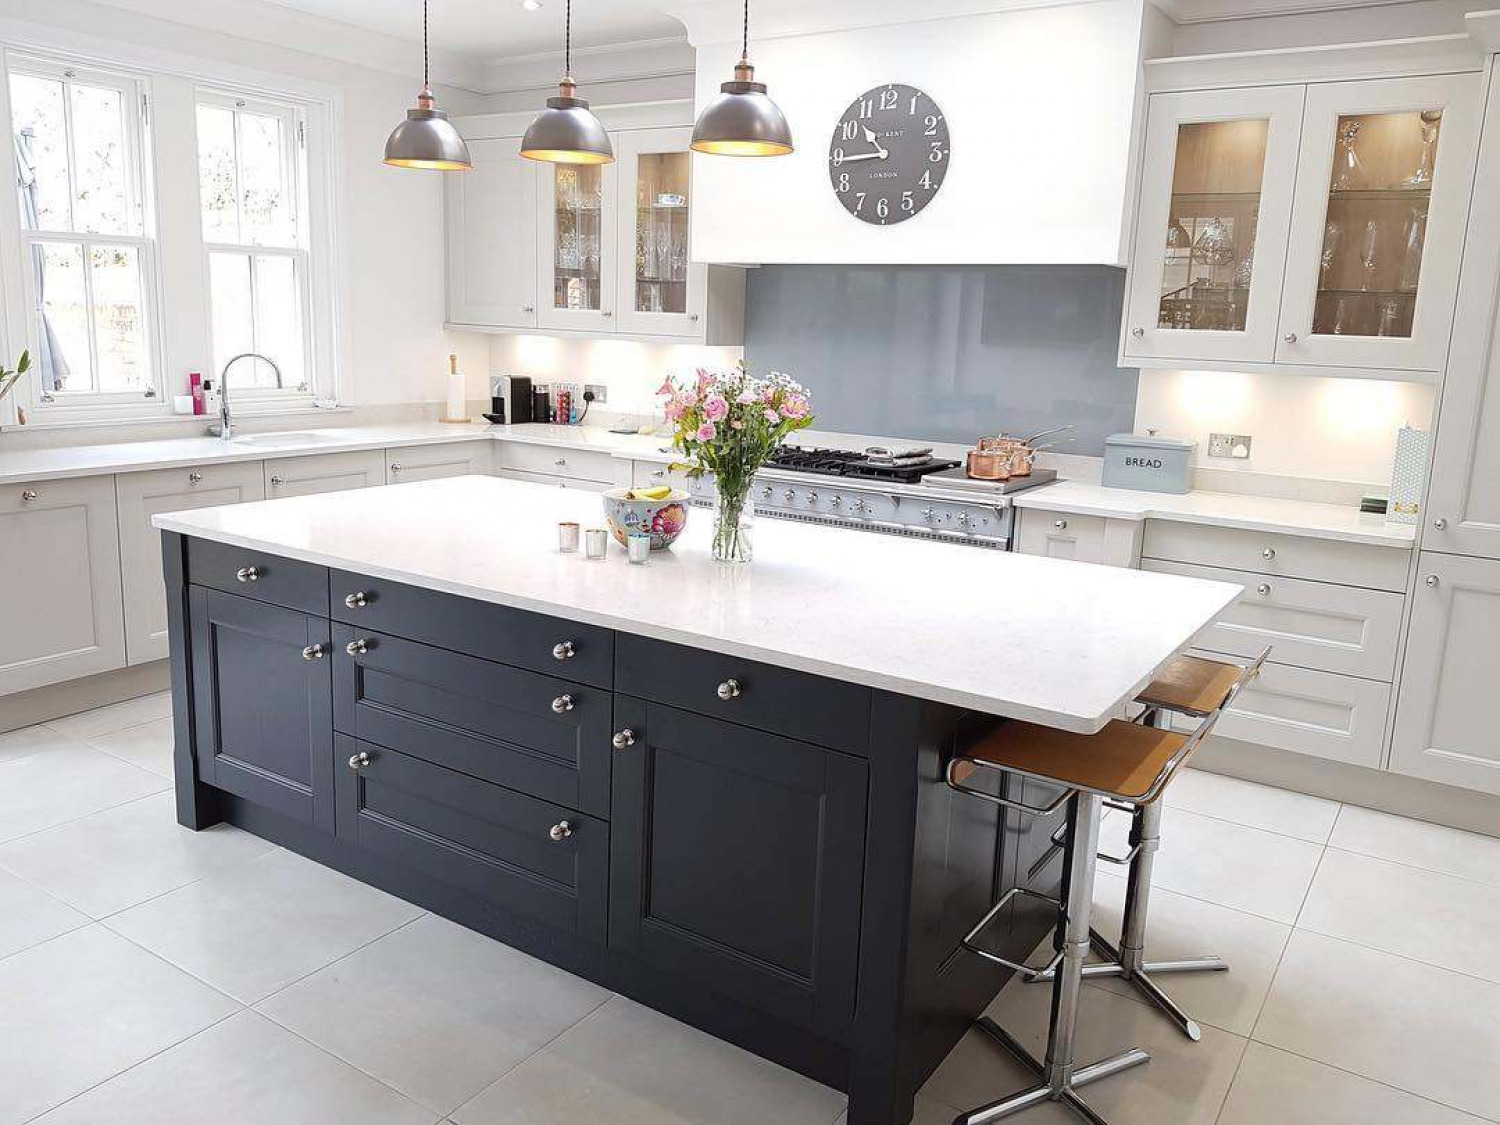 9 Must Have Kitchen Tile Ideas To Make You Swoon